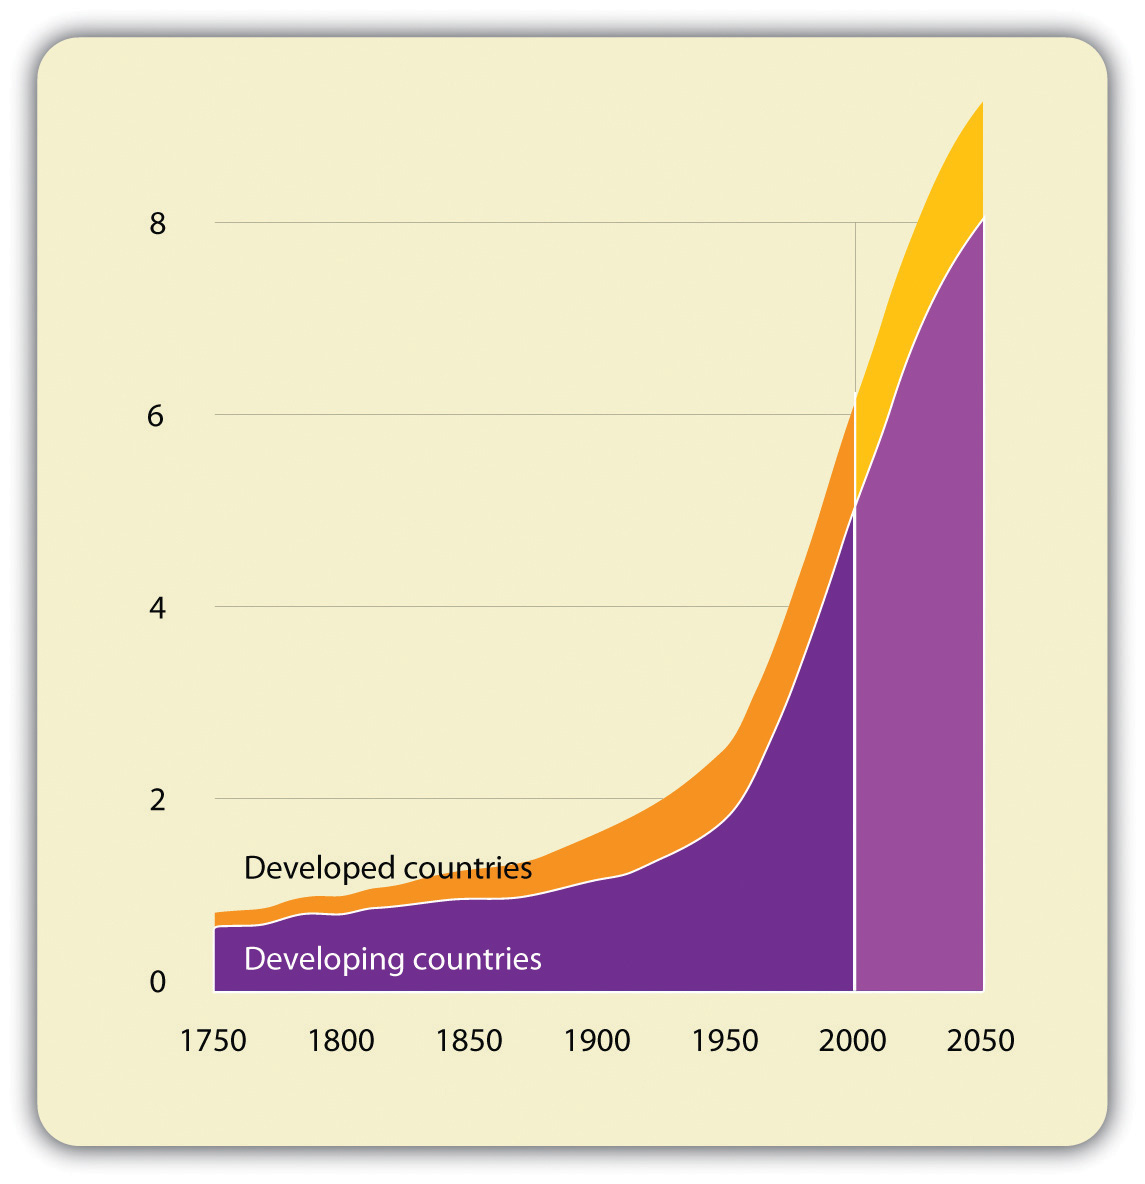 population growth in developing countries essay